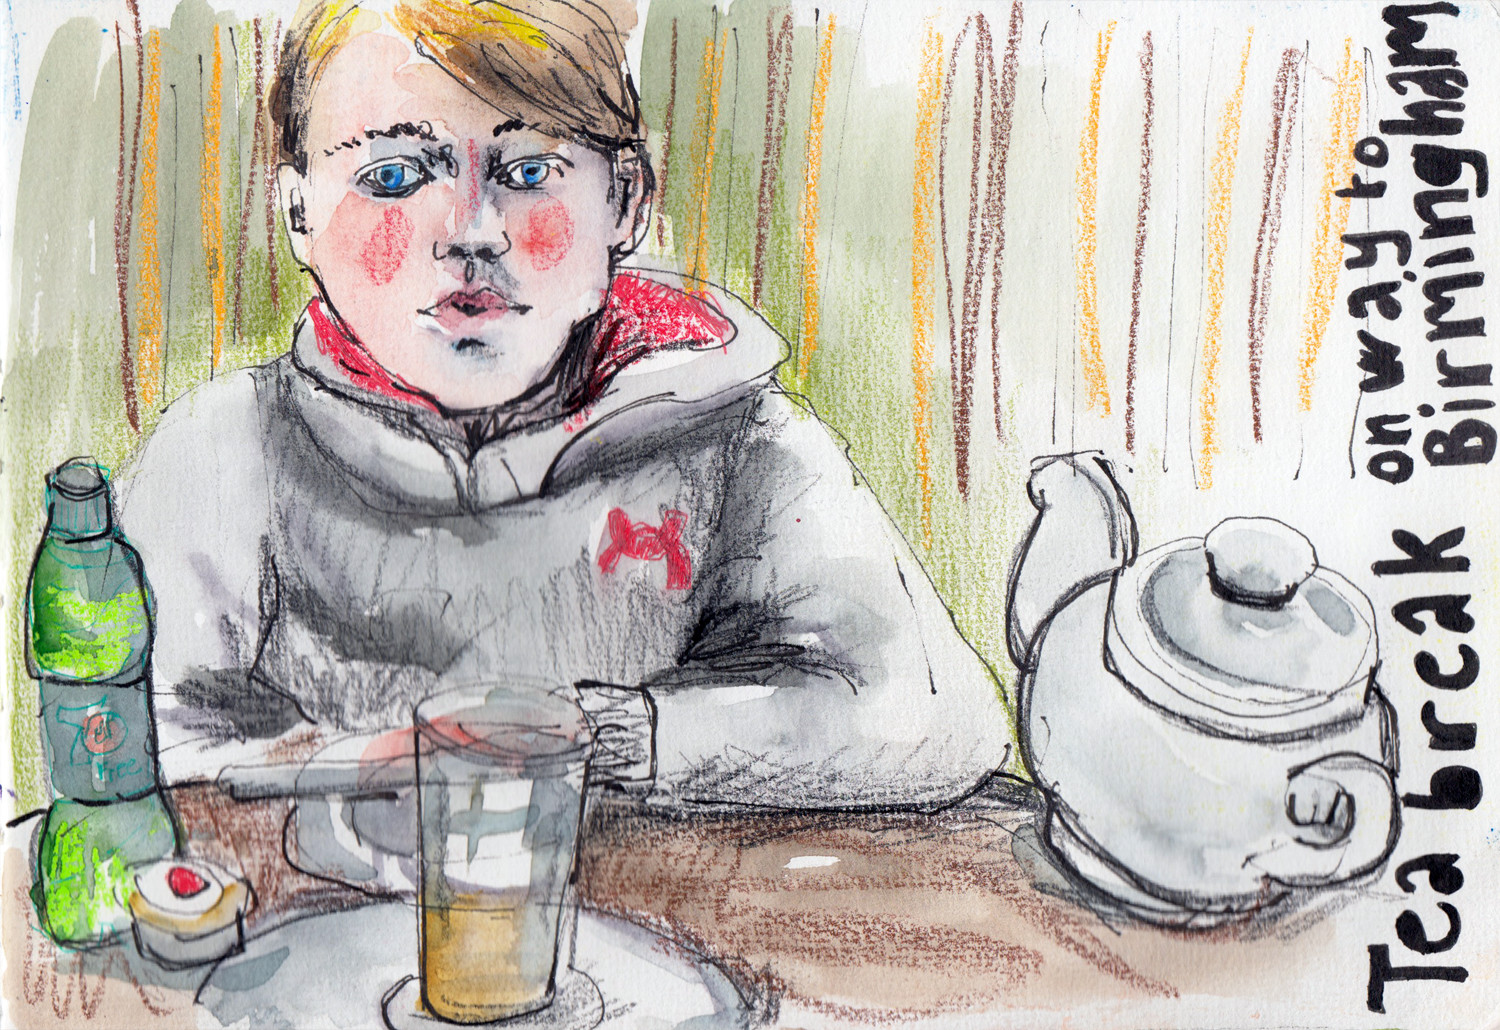 A cafe sketch in mixed media by Sophie Peanut